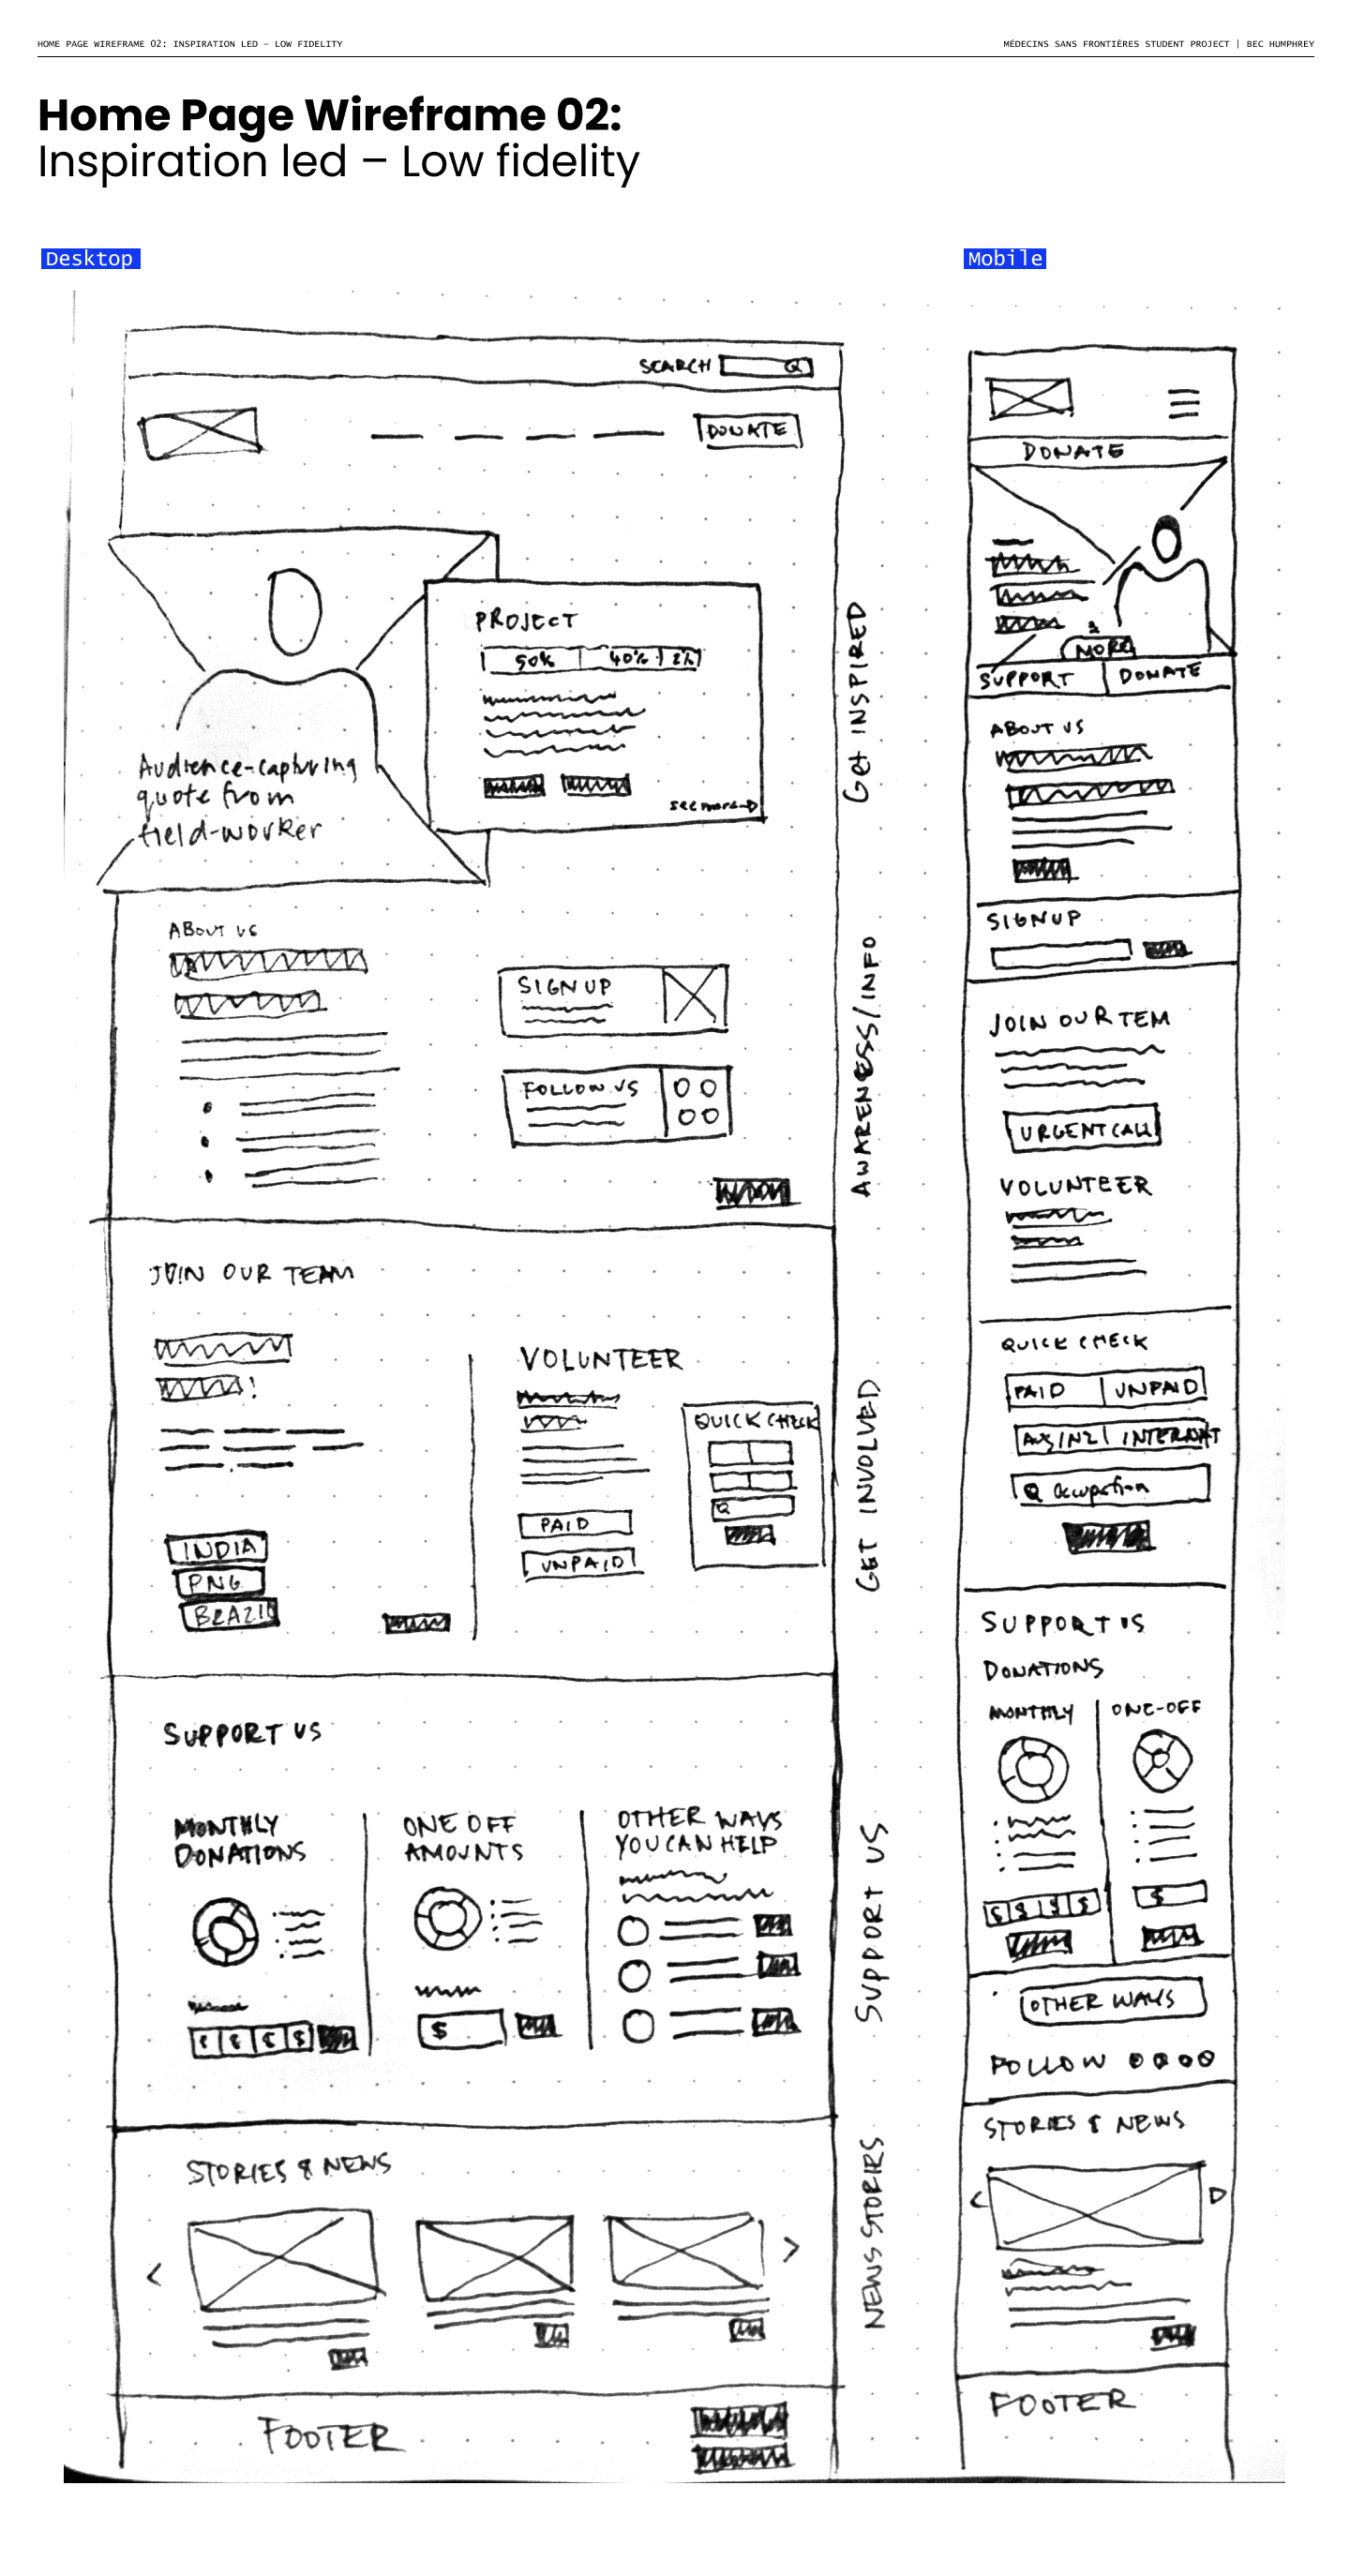 Bec_03 Home Page Wireframe 02_ Inspiration led – Low fidelity